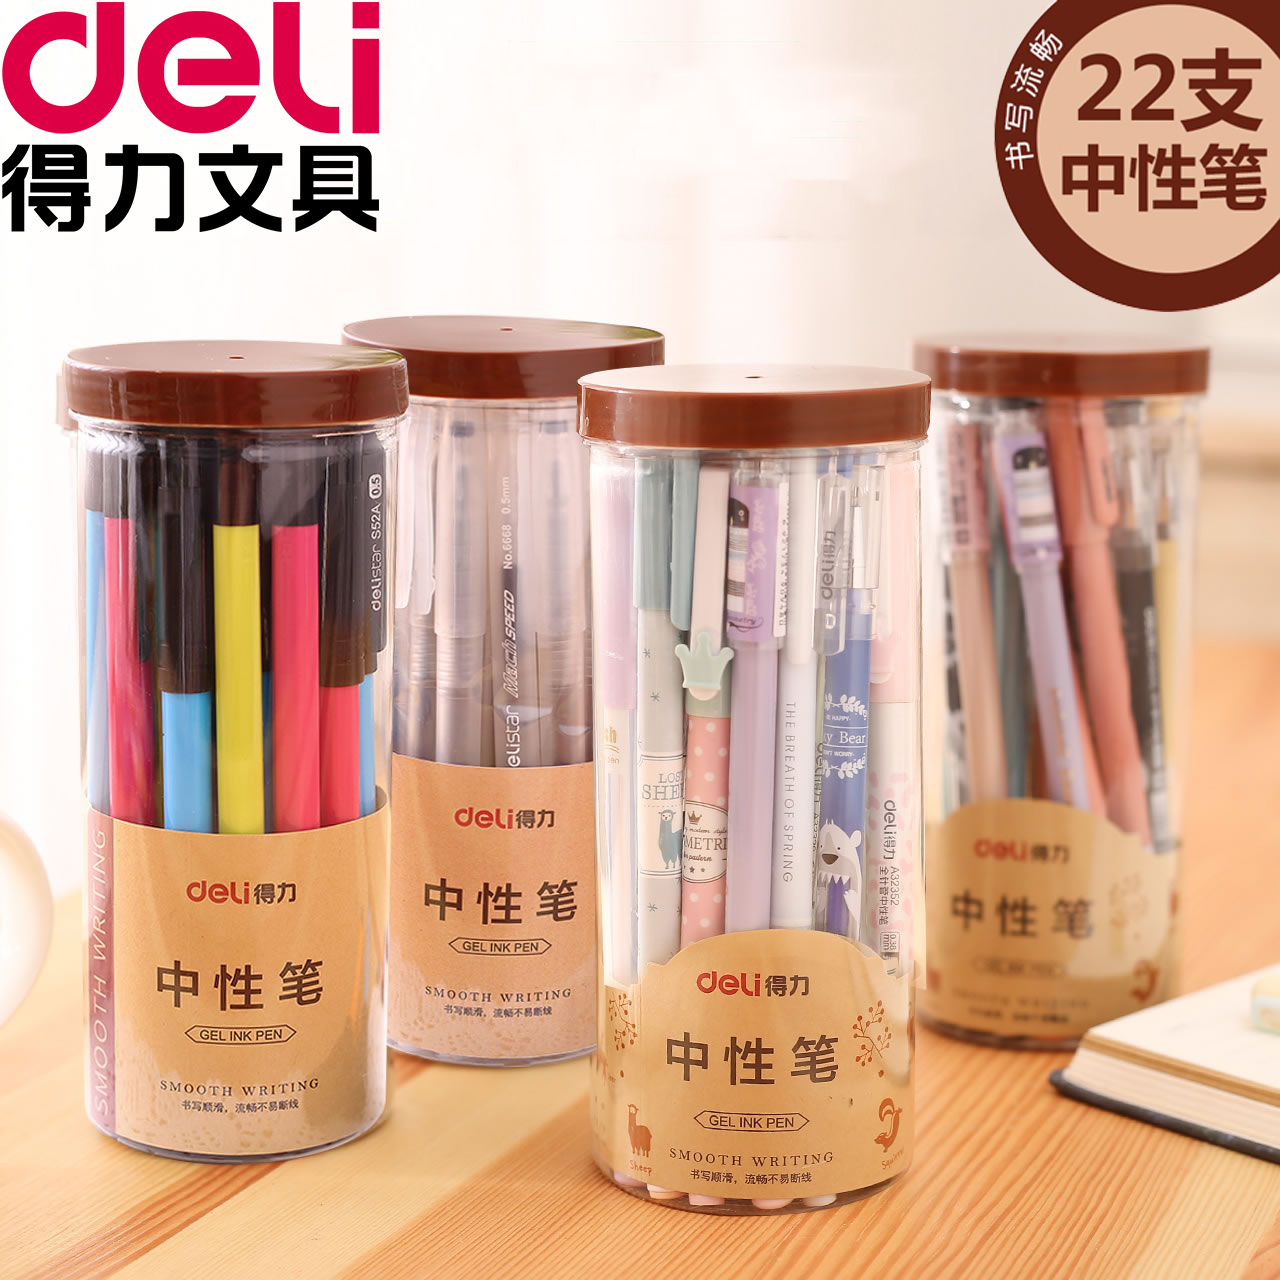 Carbon pen gel pen pen students pen pen deli deli deli stationery office stationery barreled